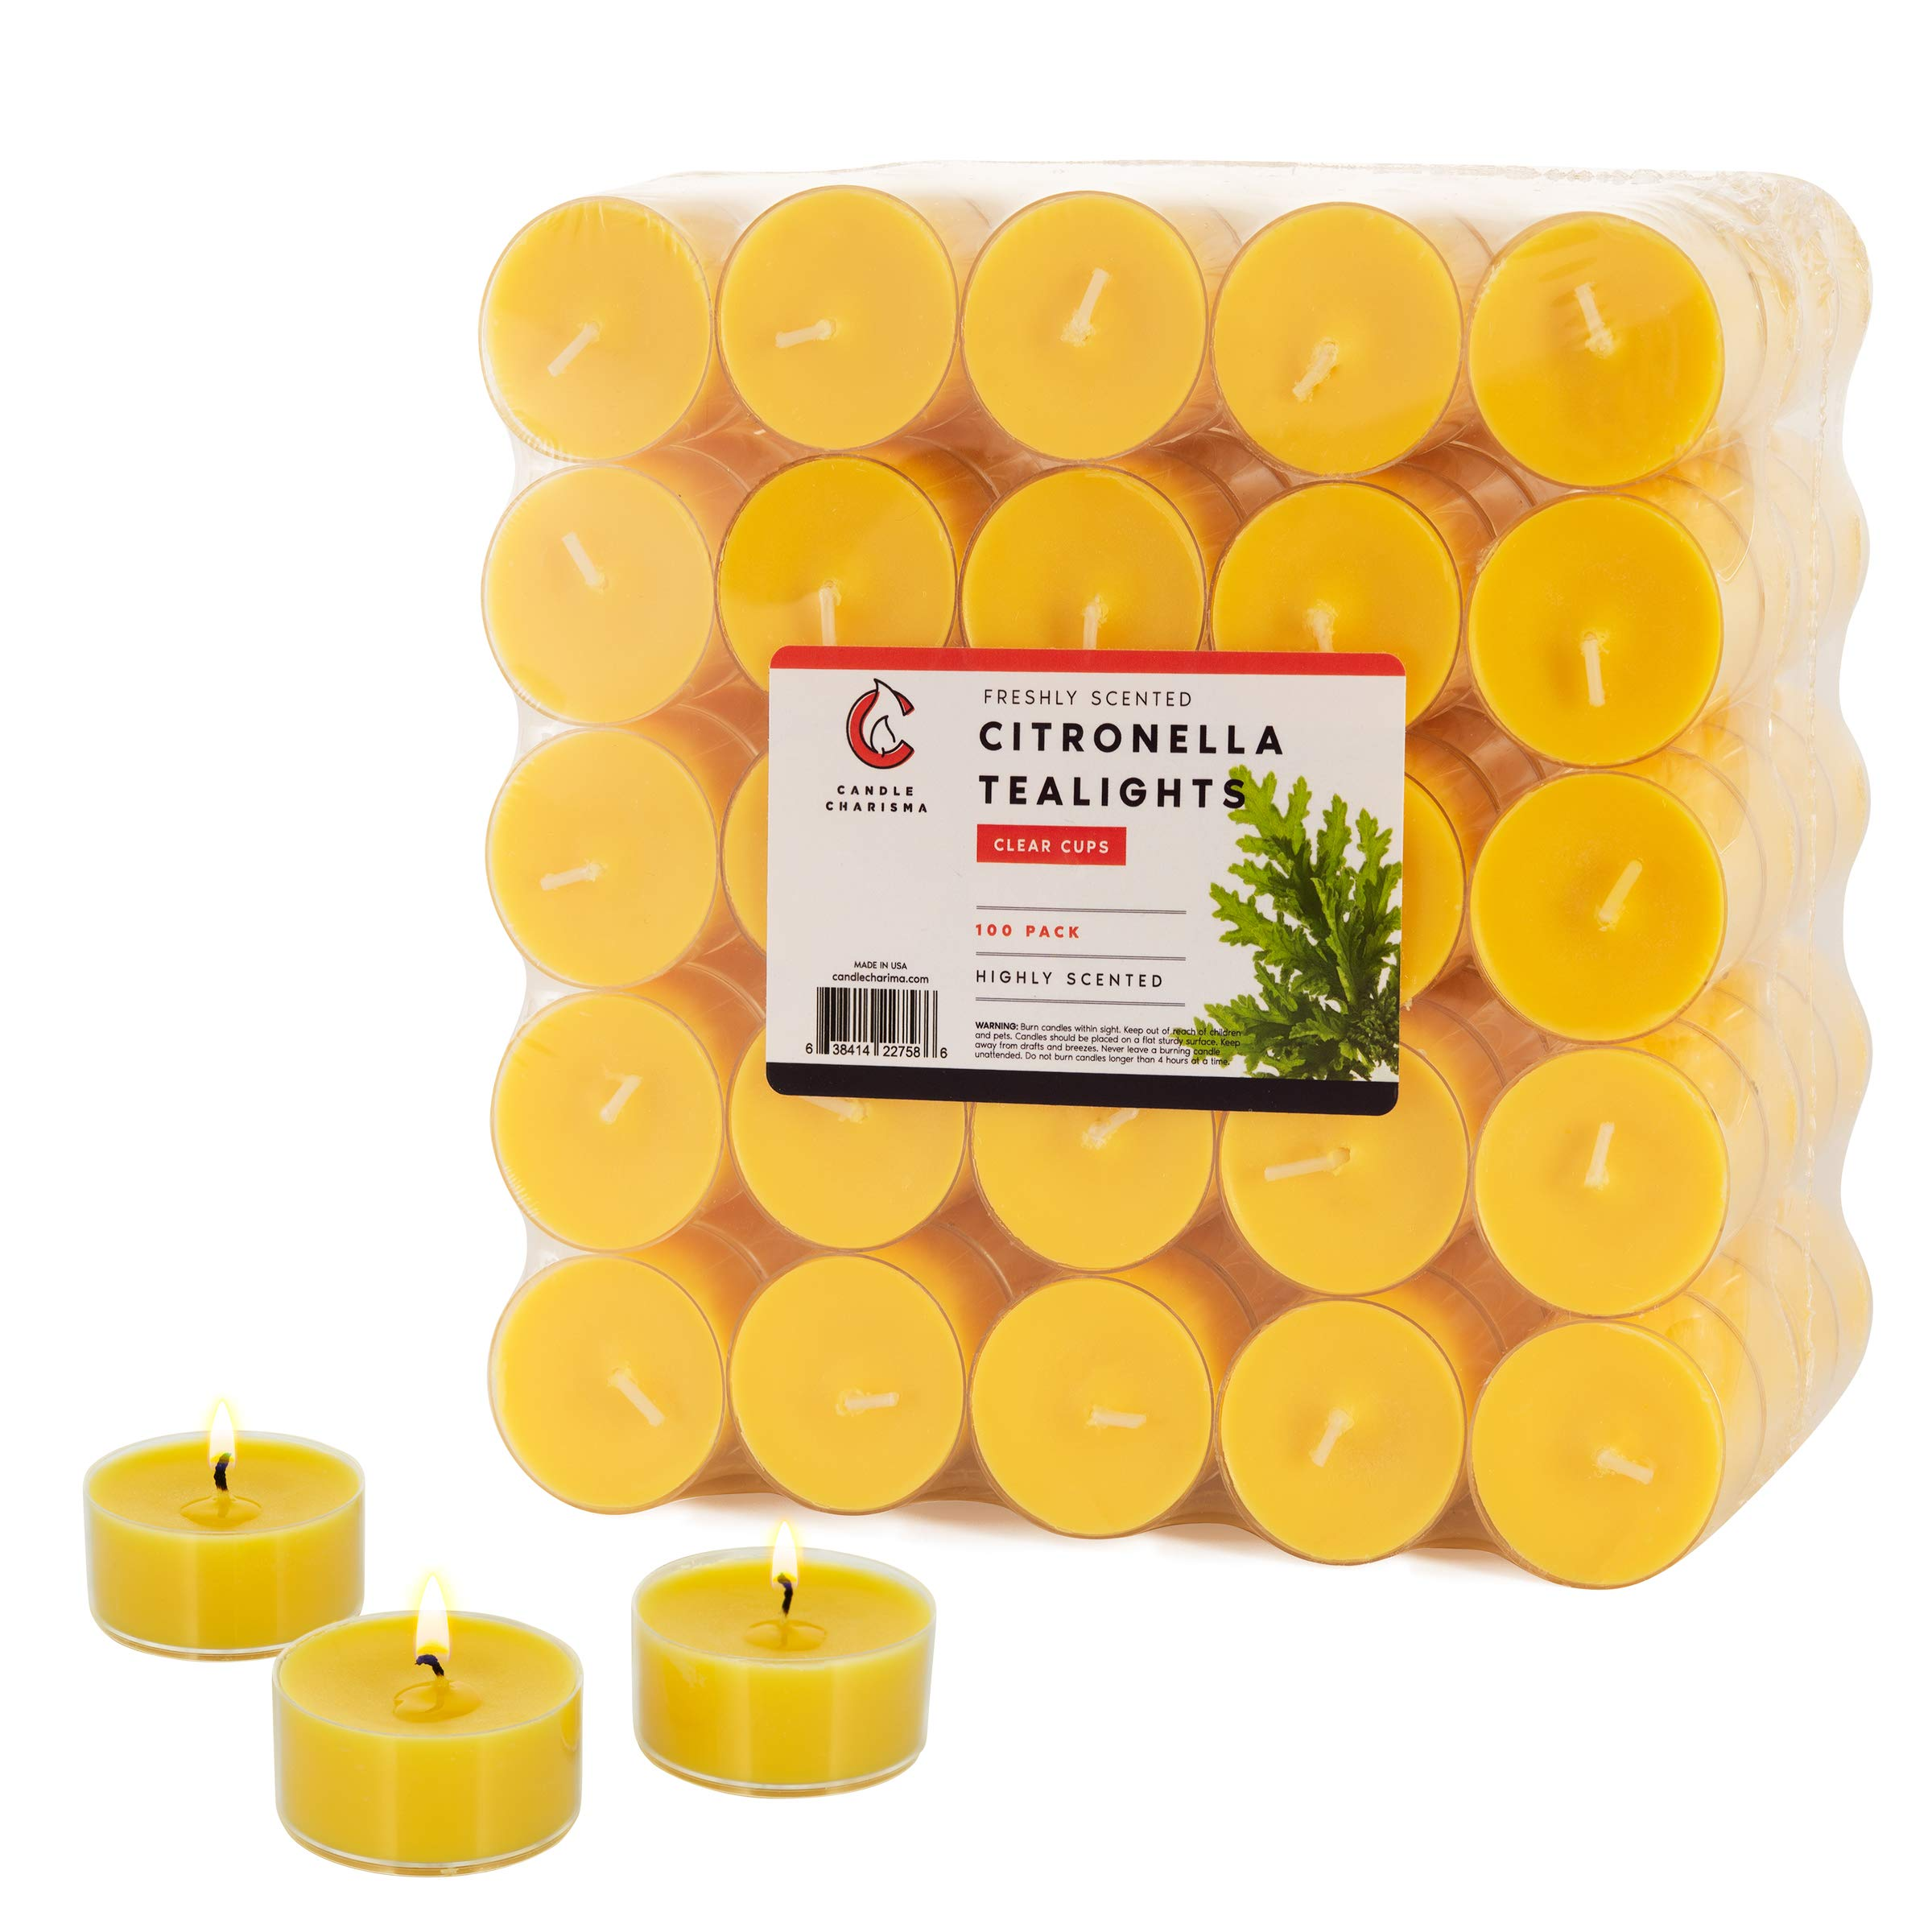 100 Citronella Tea Light Candles Fancy in Clear Cups 5 Hour Burn Time Indoor and Outdoor Made in USA